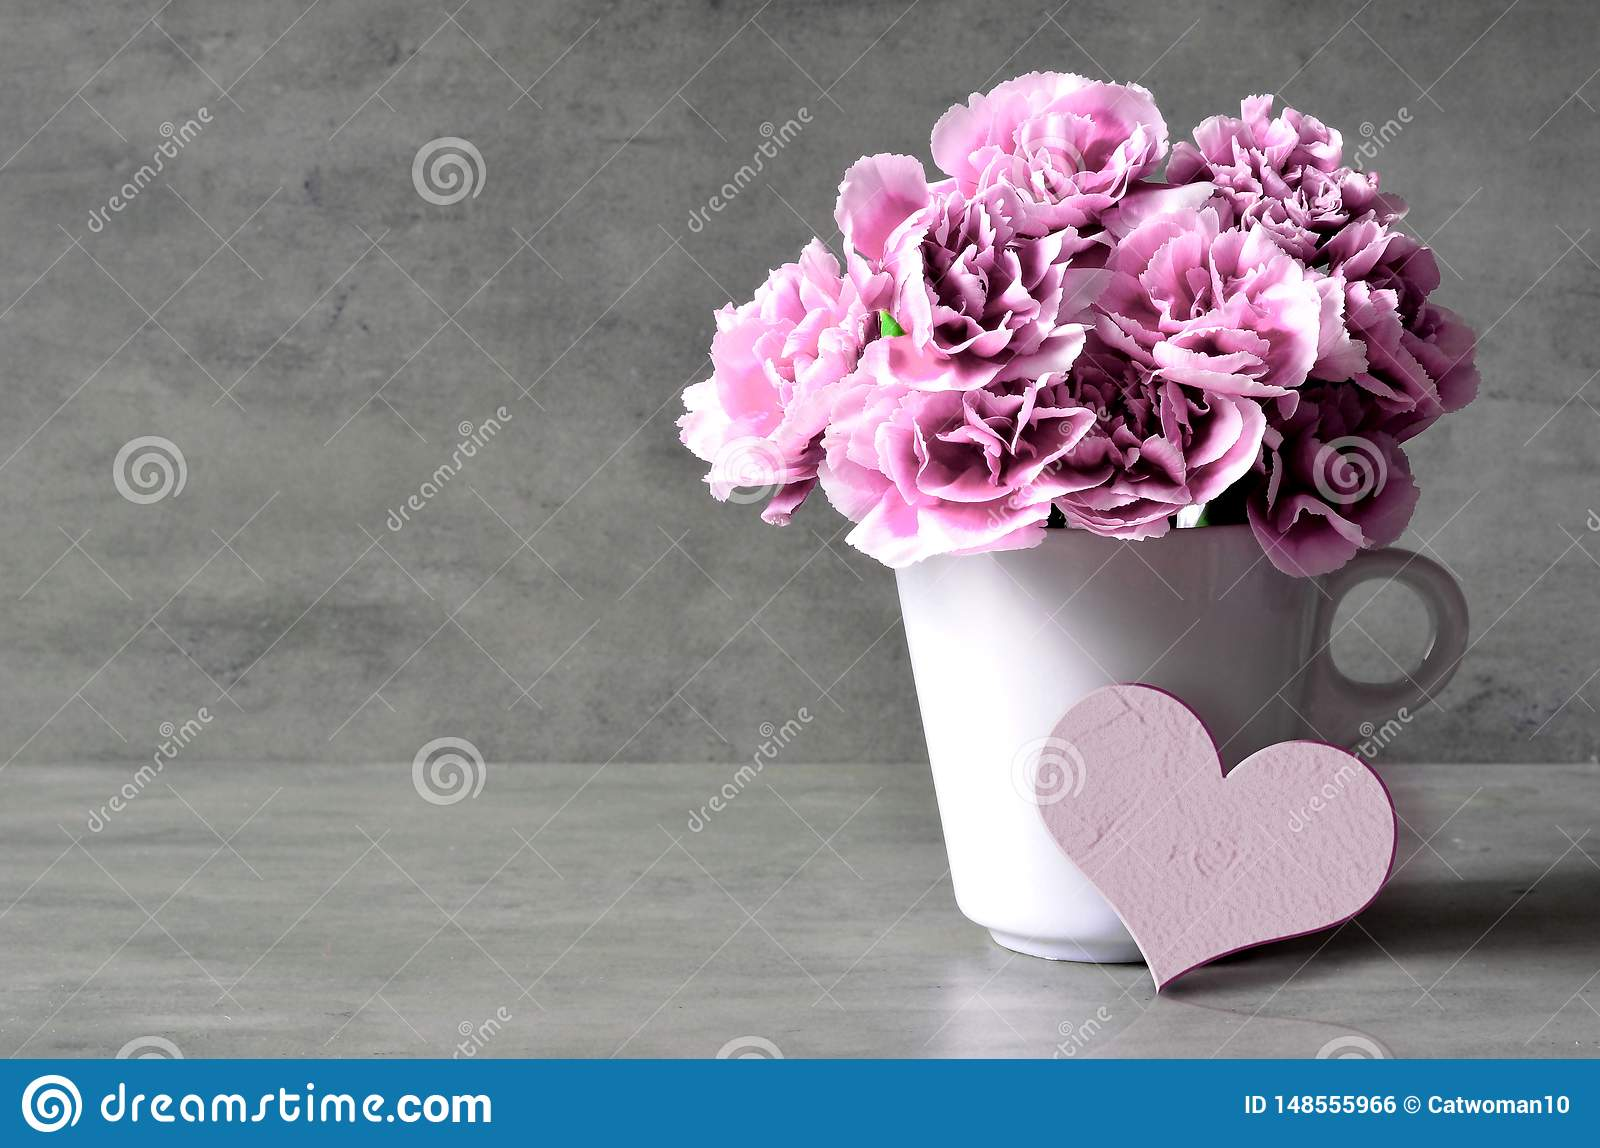 Pink carnation flowers in cup and heart on grey background